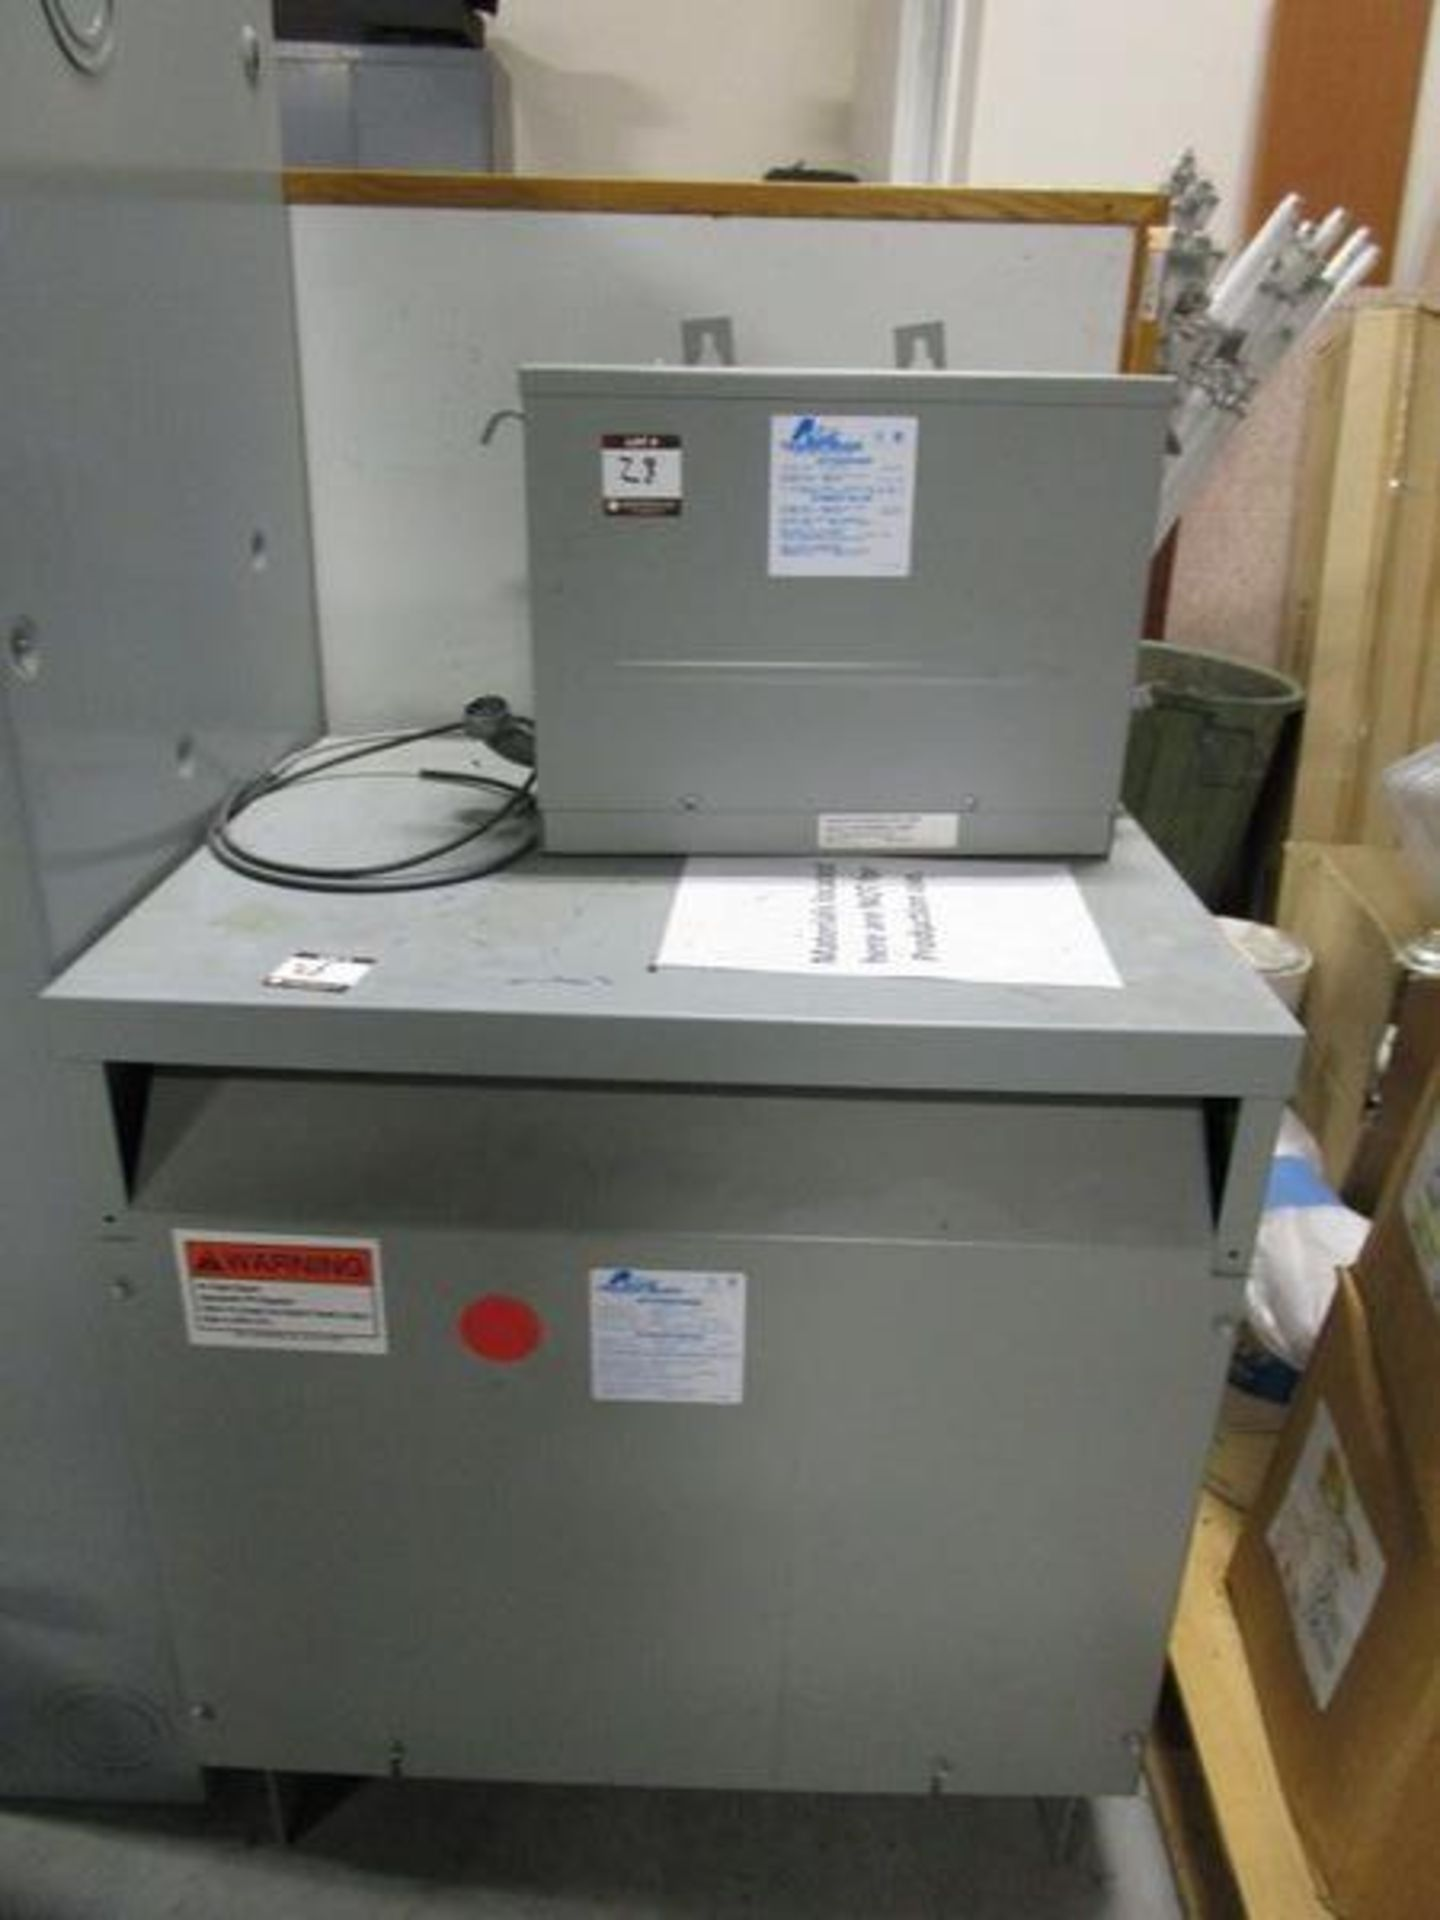 Lot GE HD Safety Switch, Acme T-252703-1 Autotransformer, Acme T-2A-52717-1 Transformer - Image 4 of 6